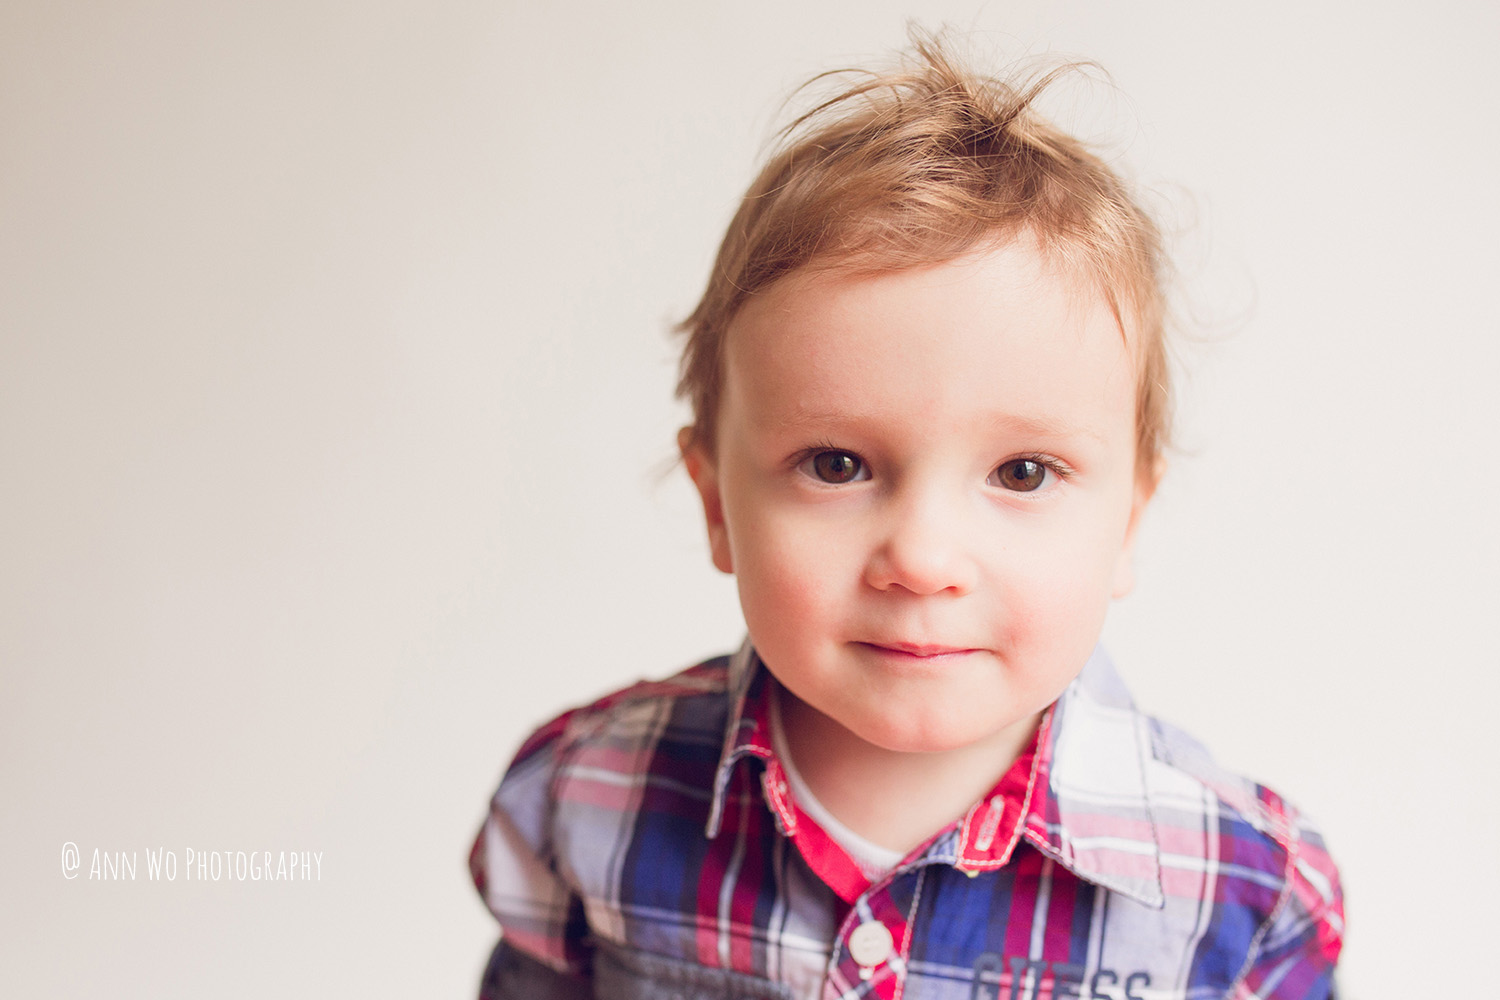 ann-wo-child-photograph-london-lifestyle-session-toddler-boy-family-pictures-06.JPG